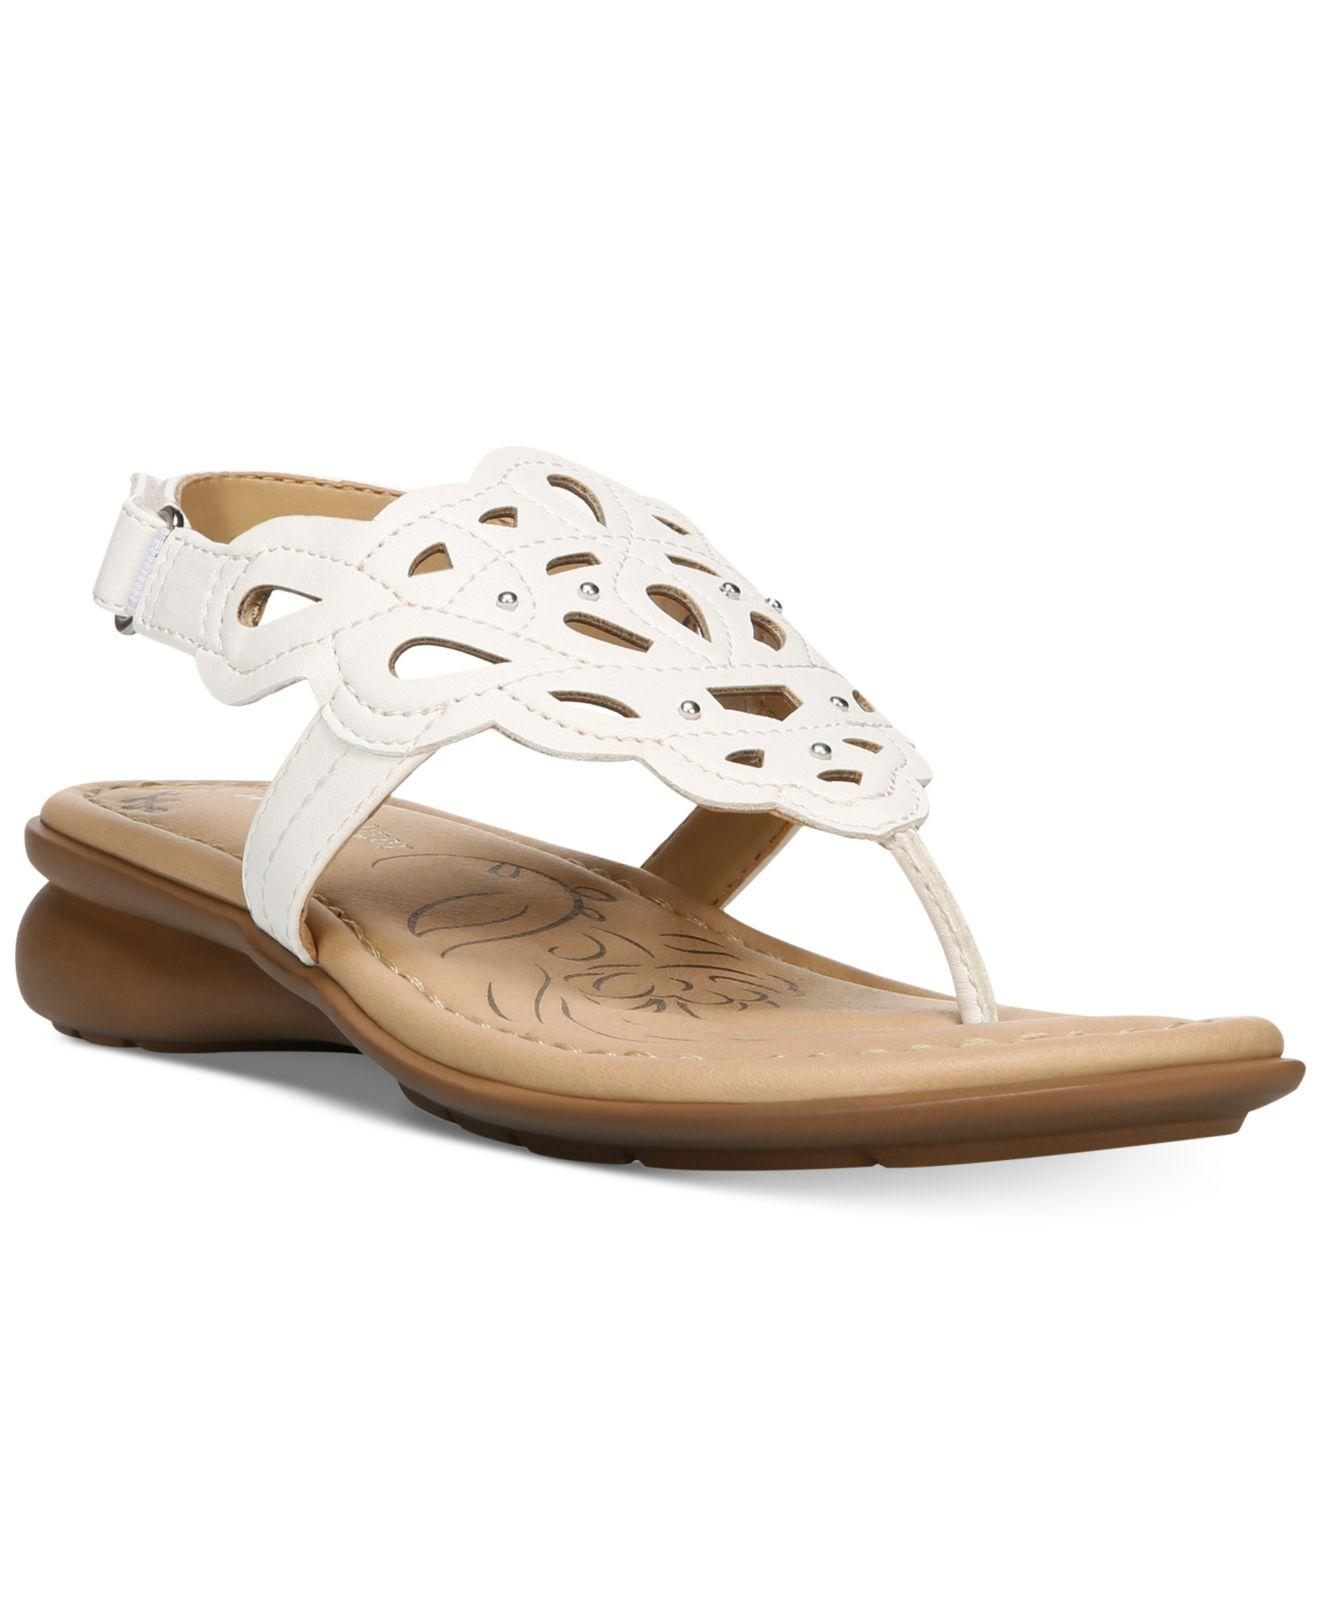 Jade Colur Shoes For Women